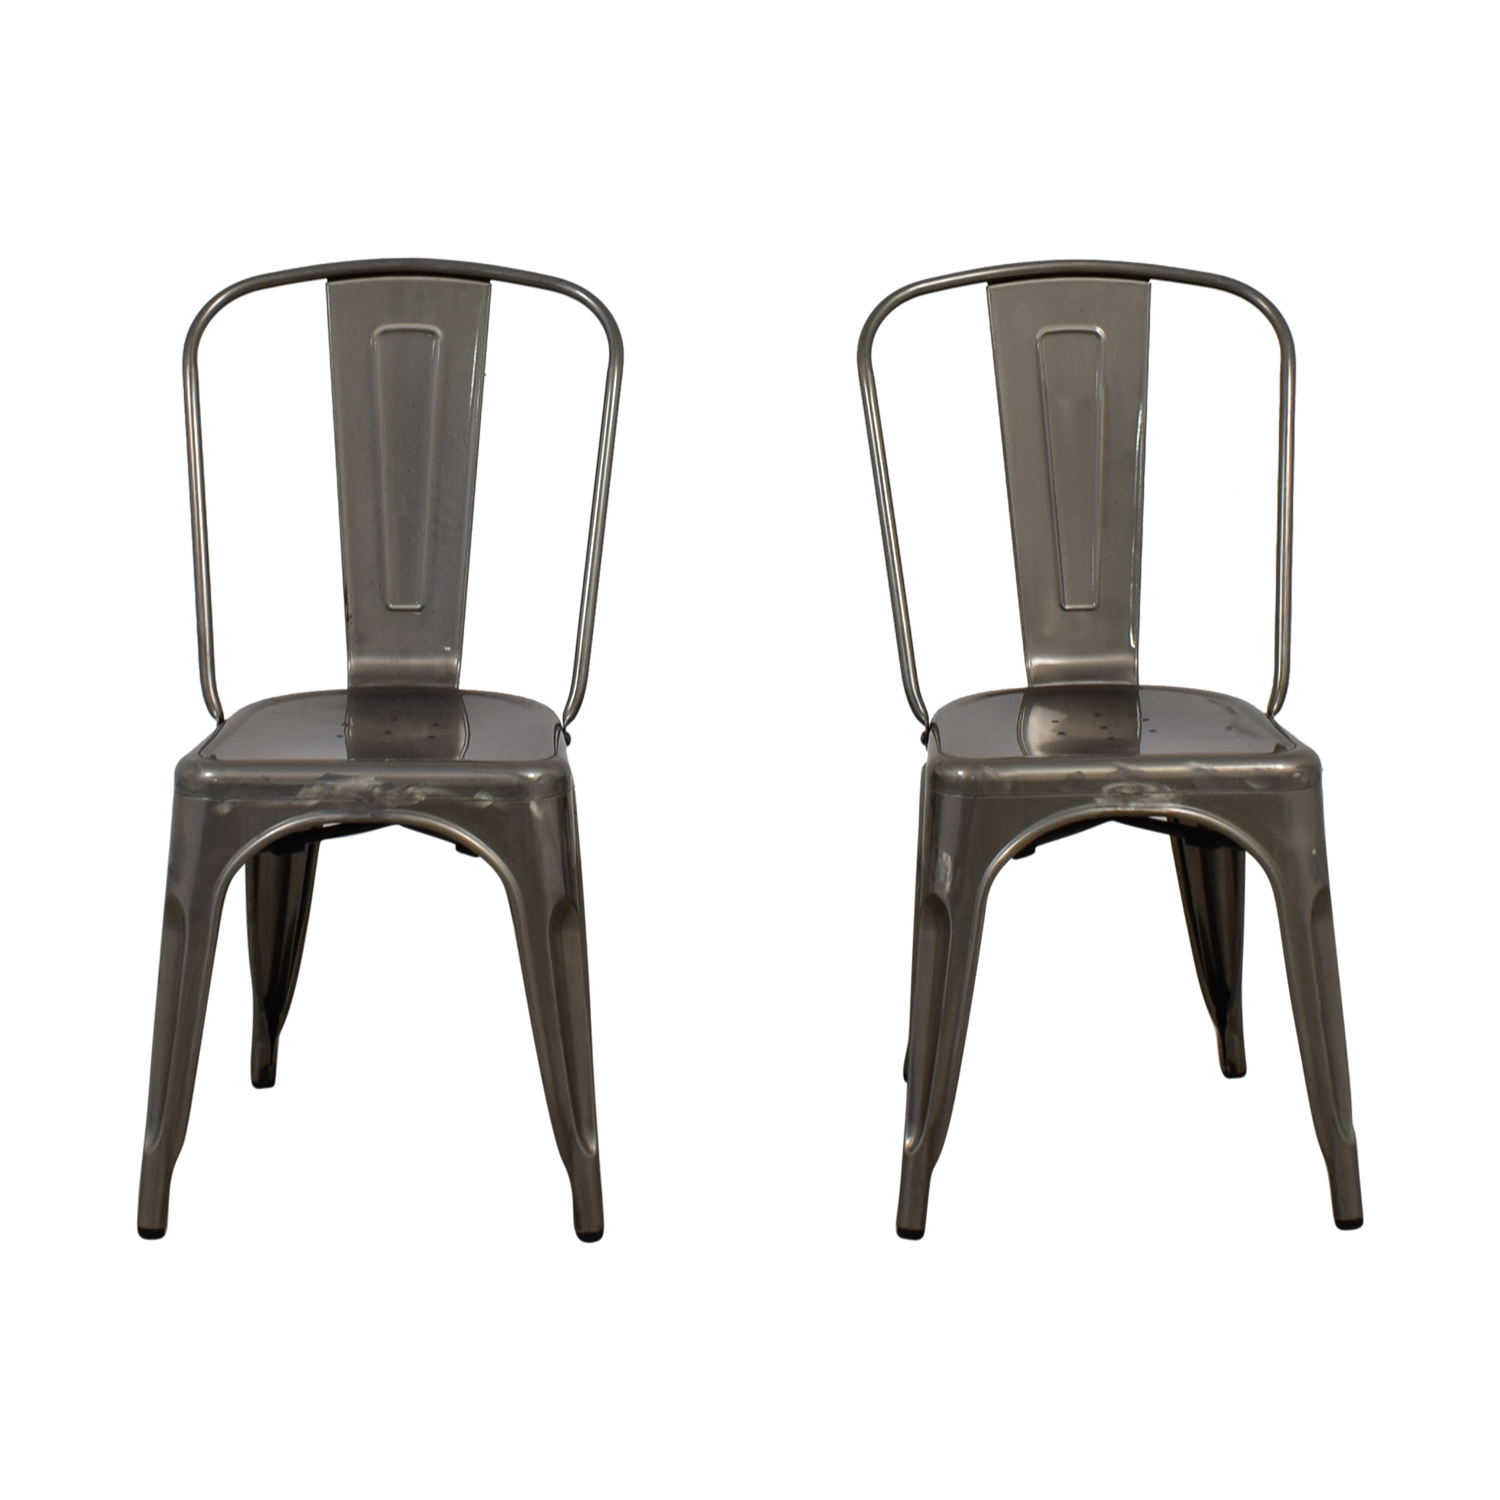 Brushed Metal Bistro Chairs Second Hand ...